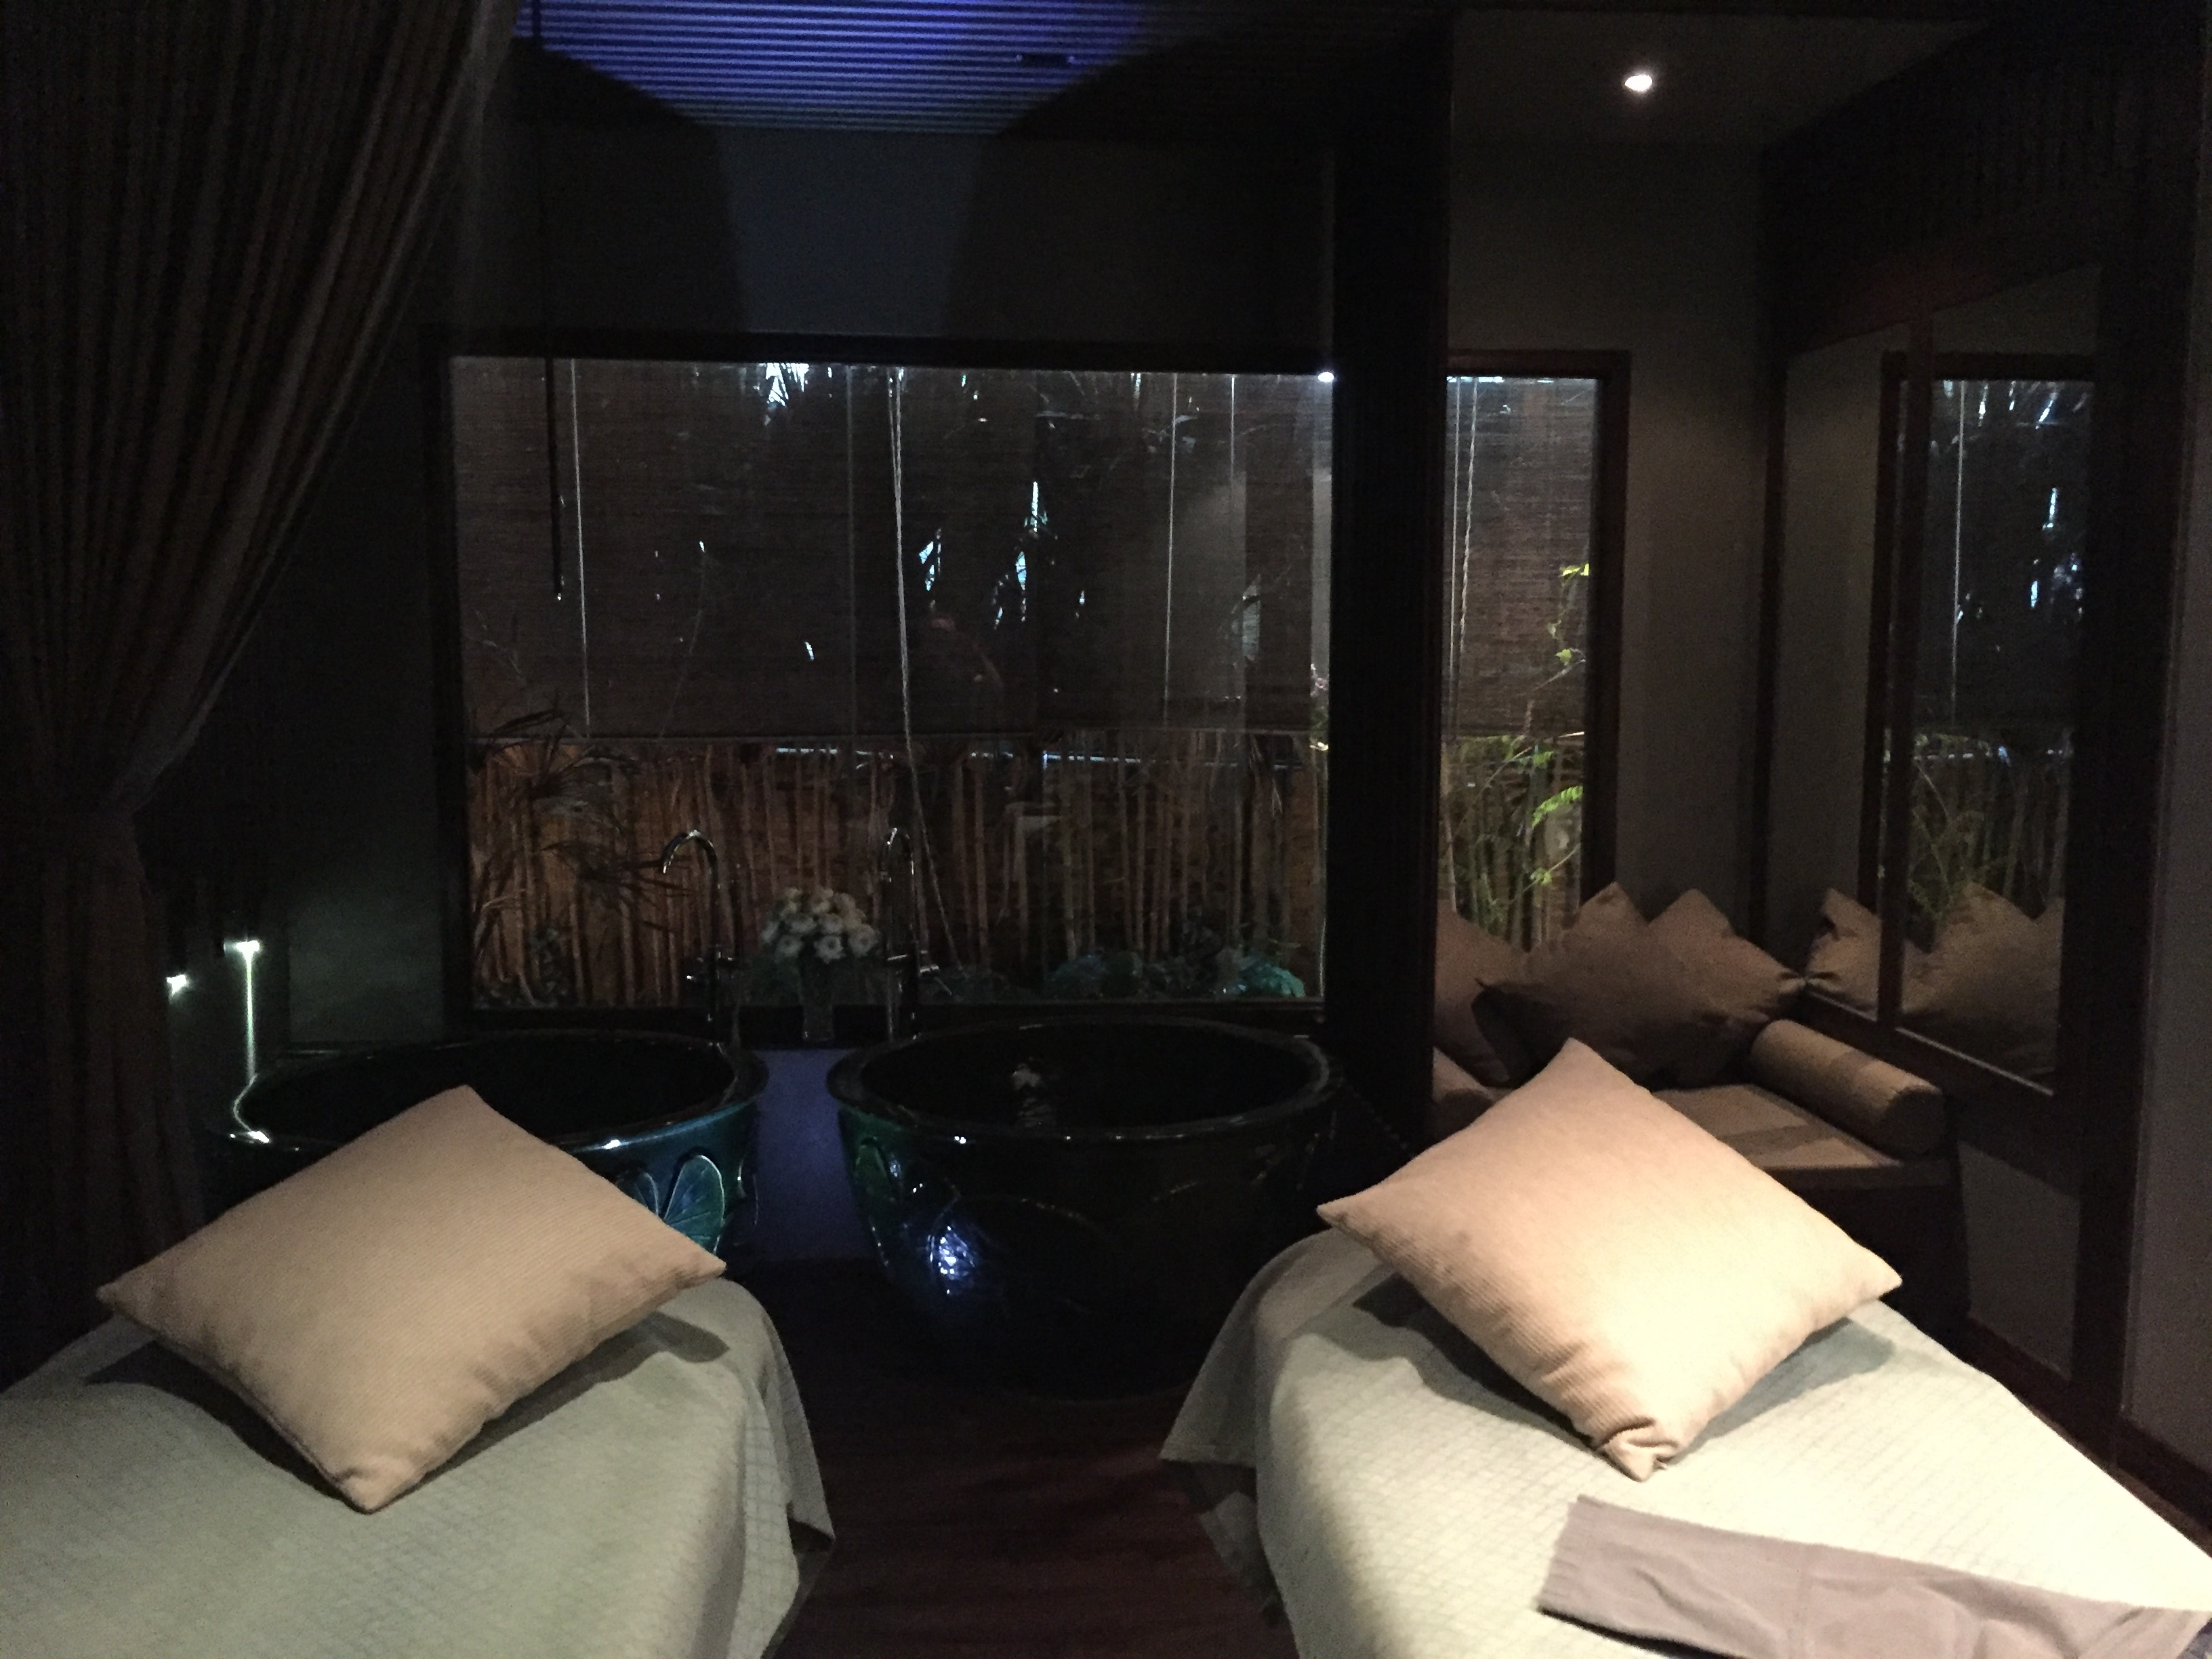 Divana Spa Bangkok Divana Nurture Spa Bangkok Should Be On Every Spa Lover S Bucket